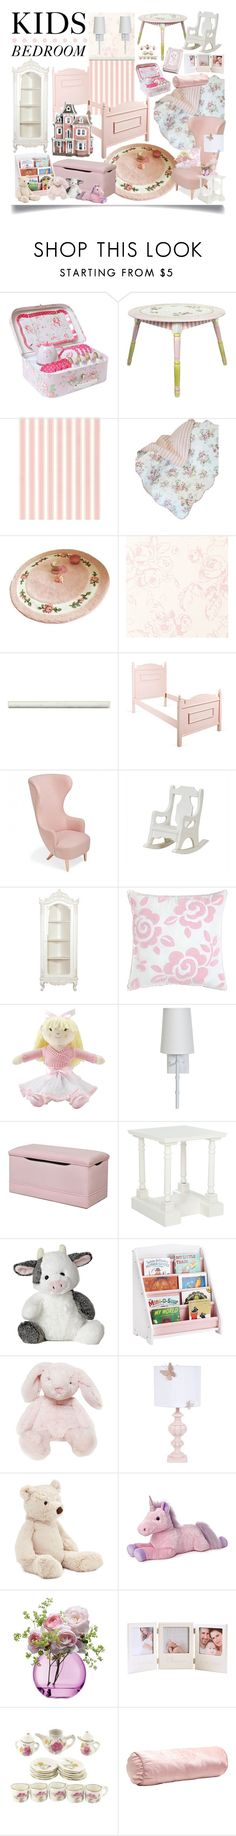 """""""Kids Bedroom"""" by ittie-kittie ❤ liked on Polyvore featuring interior, interiors, interior design, home, home decor, interior decorating, Teamson, Tom Dixon, Dena Home and Laura Ashley"""